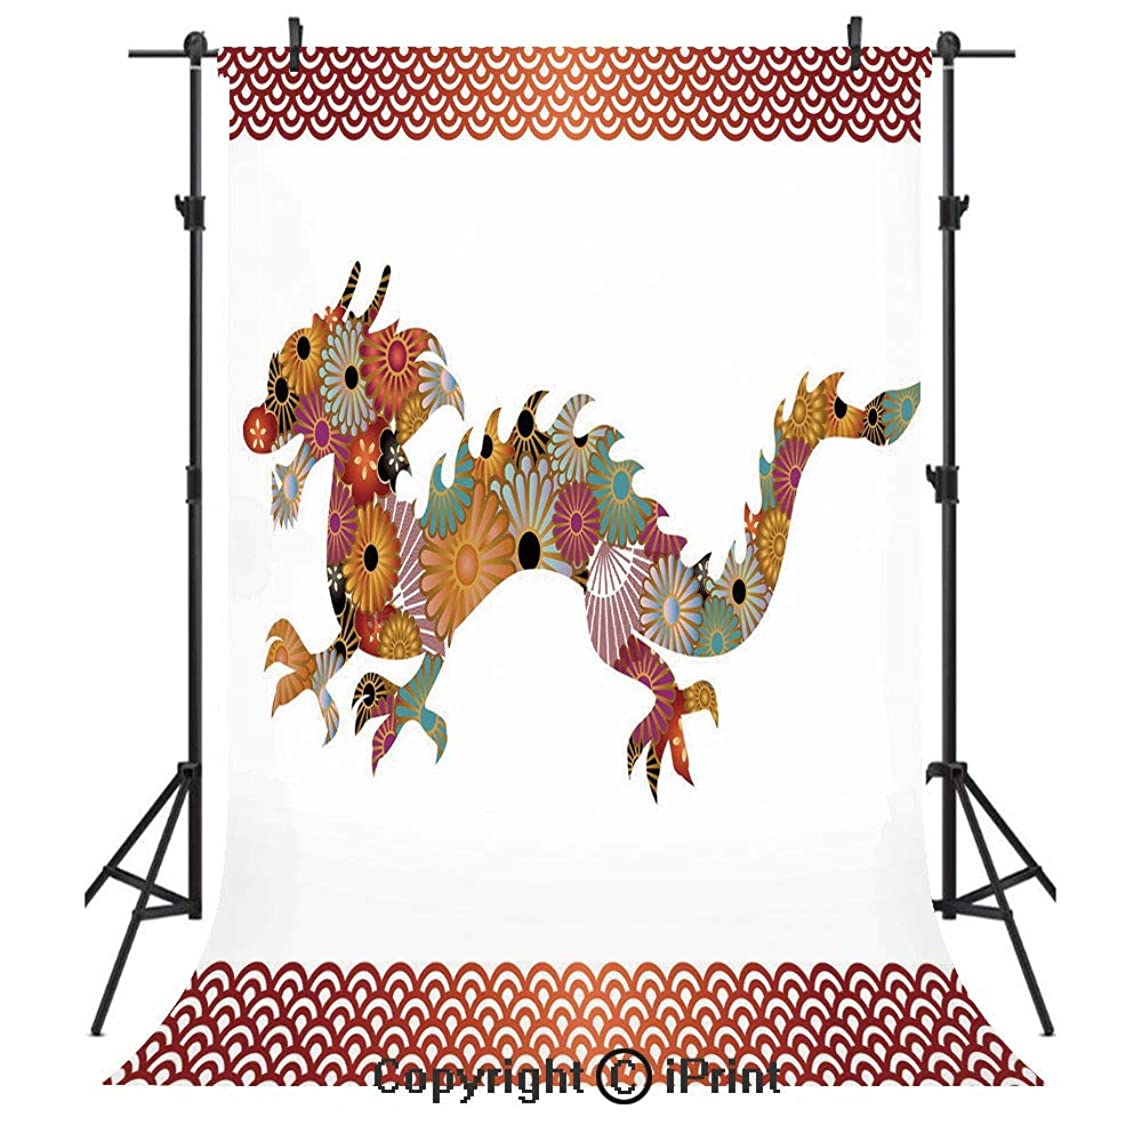 Dragon Photography Backdrops,Floral Ornamental Dragon Body Silhouette with Classic Japanese Wavy Folk Pattern,Birthday Party Seamless Photo Studio Booth Background Banner 3x5ft,Multicolor